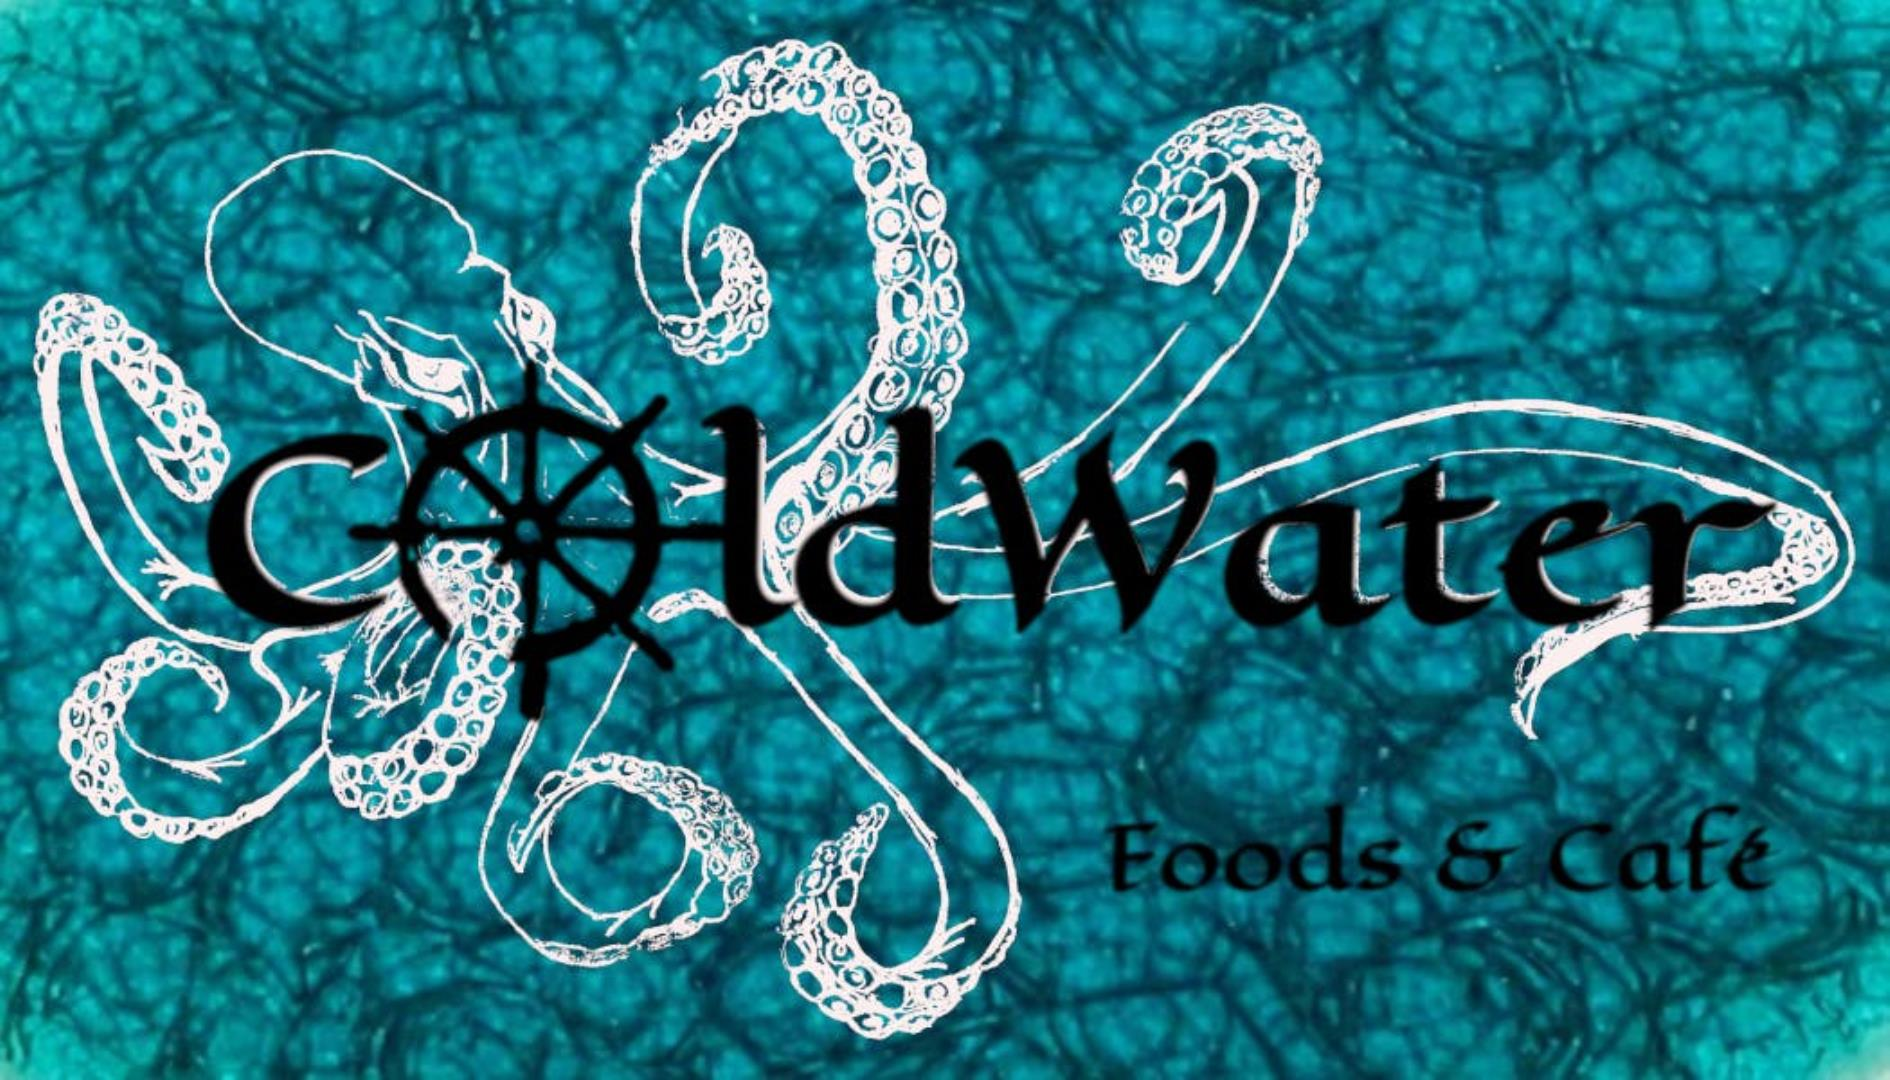 Coldwater Foods & Cafe Restaurant - Picture